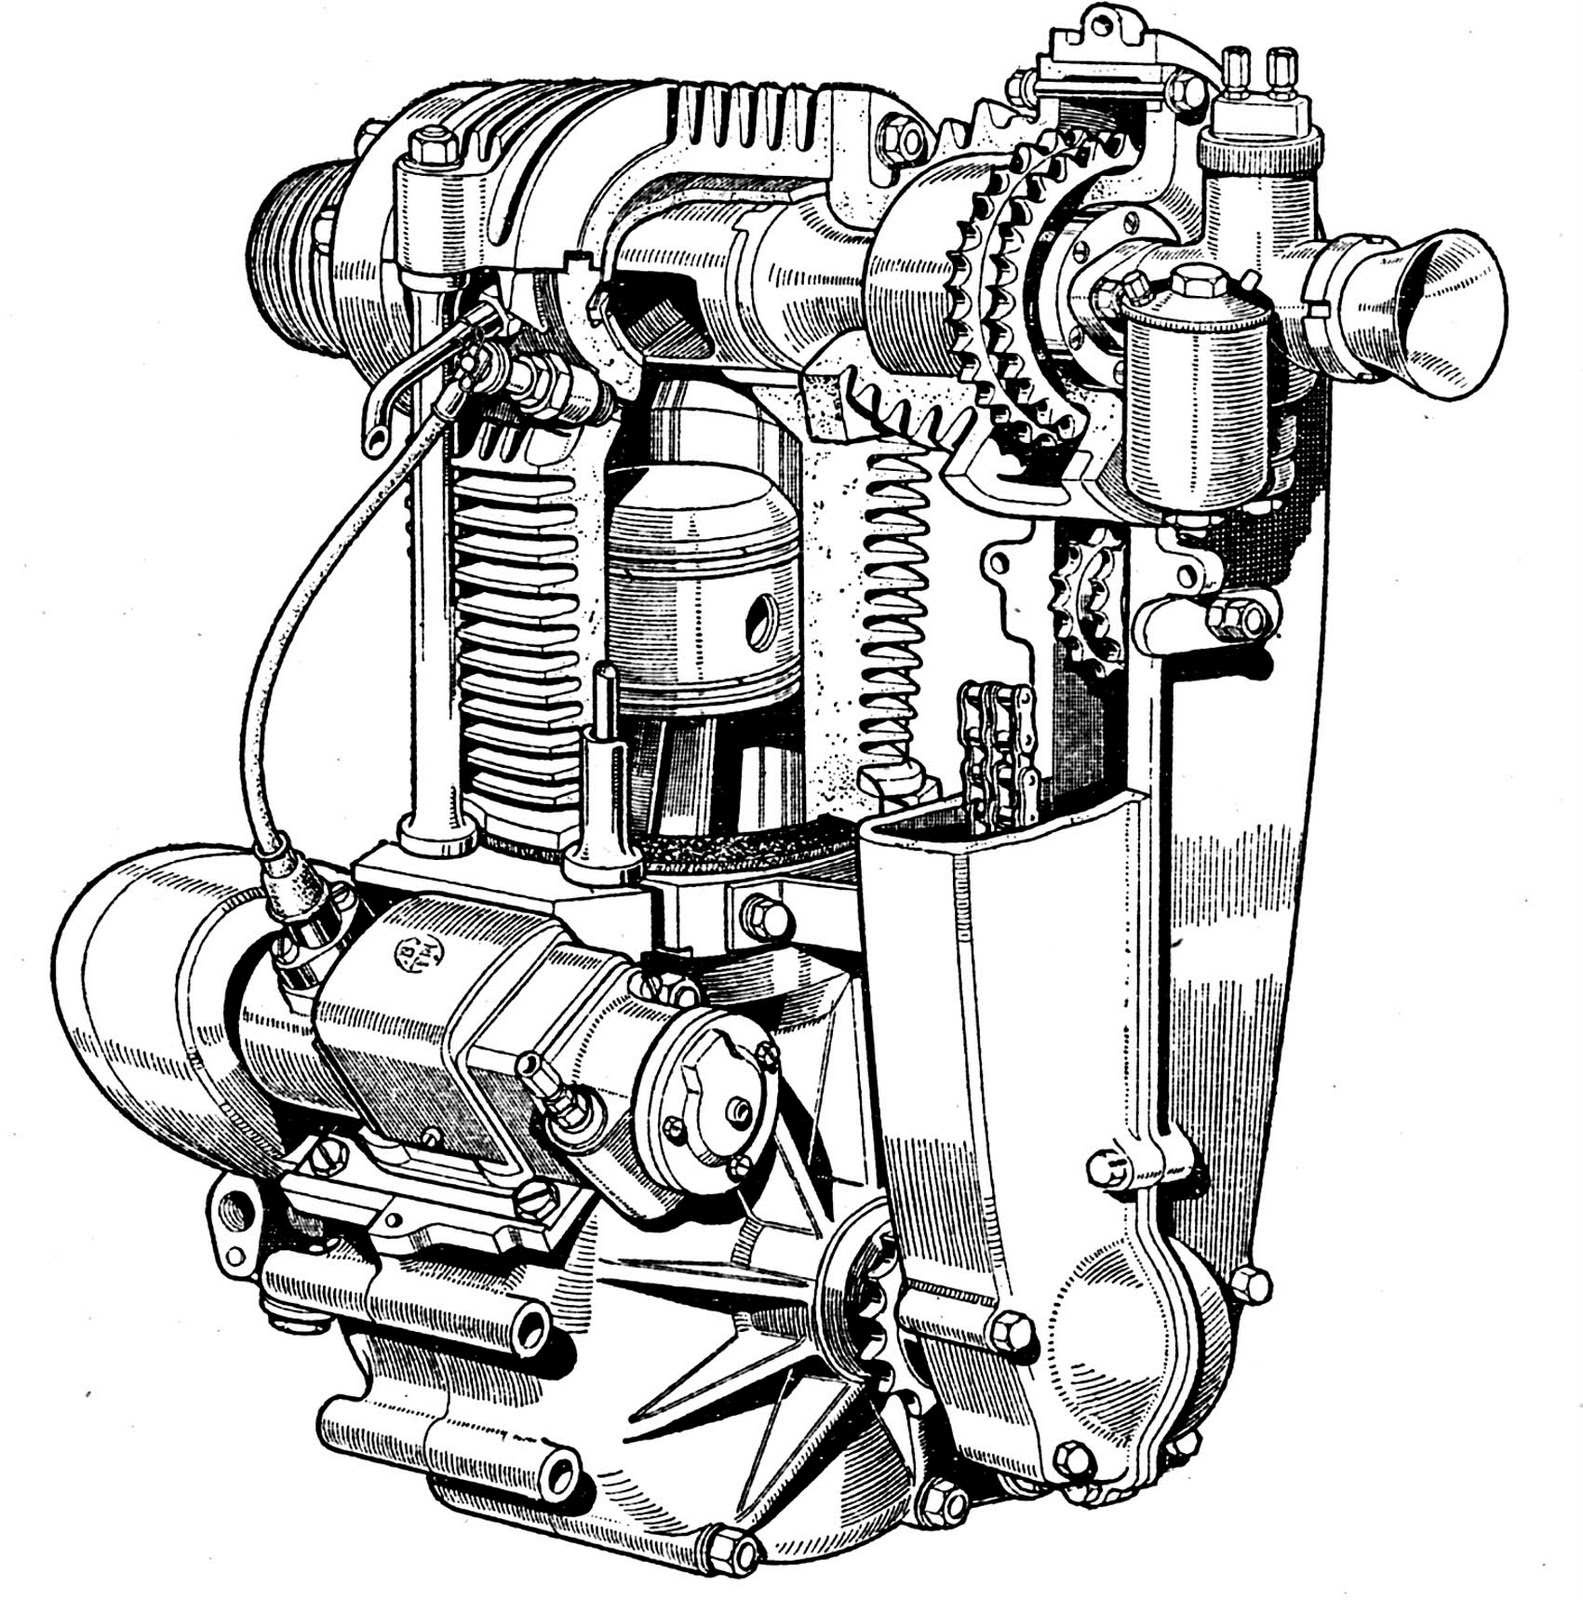 plymouth prowler engine schematic plymouth get free image about wiring diagram